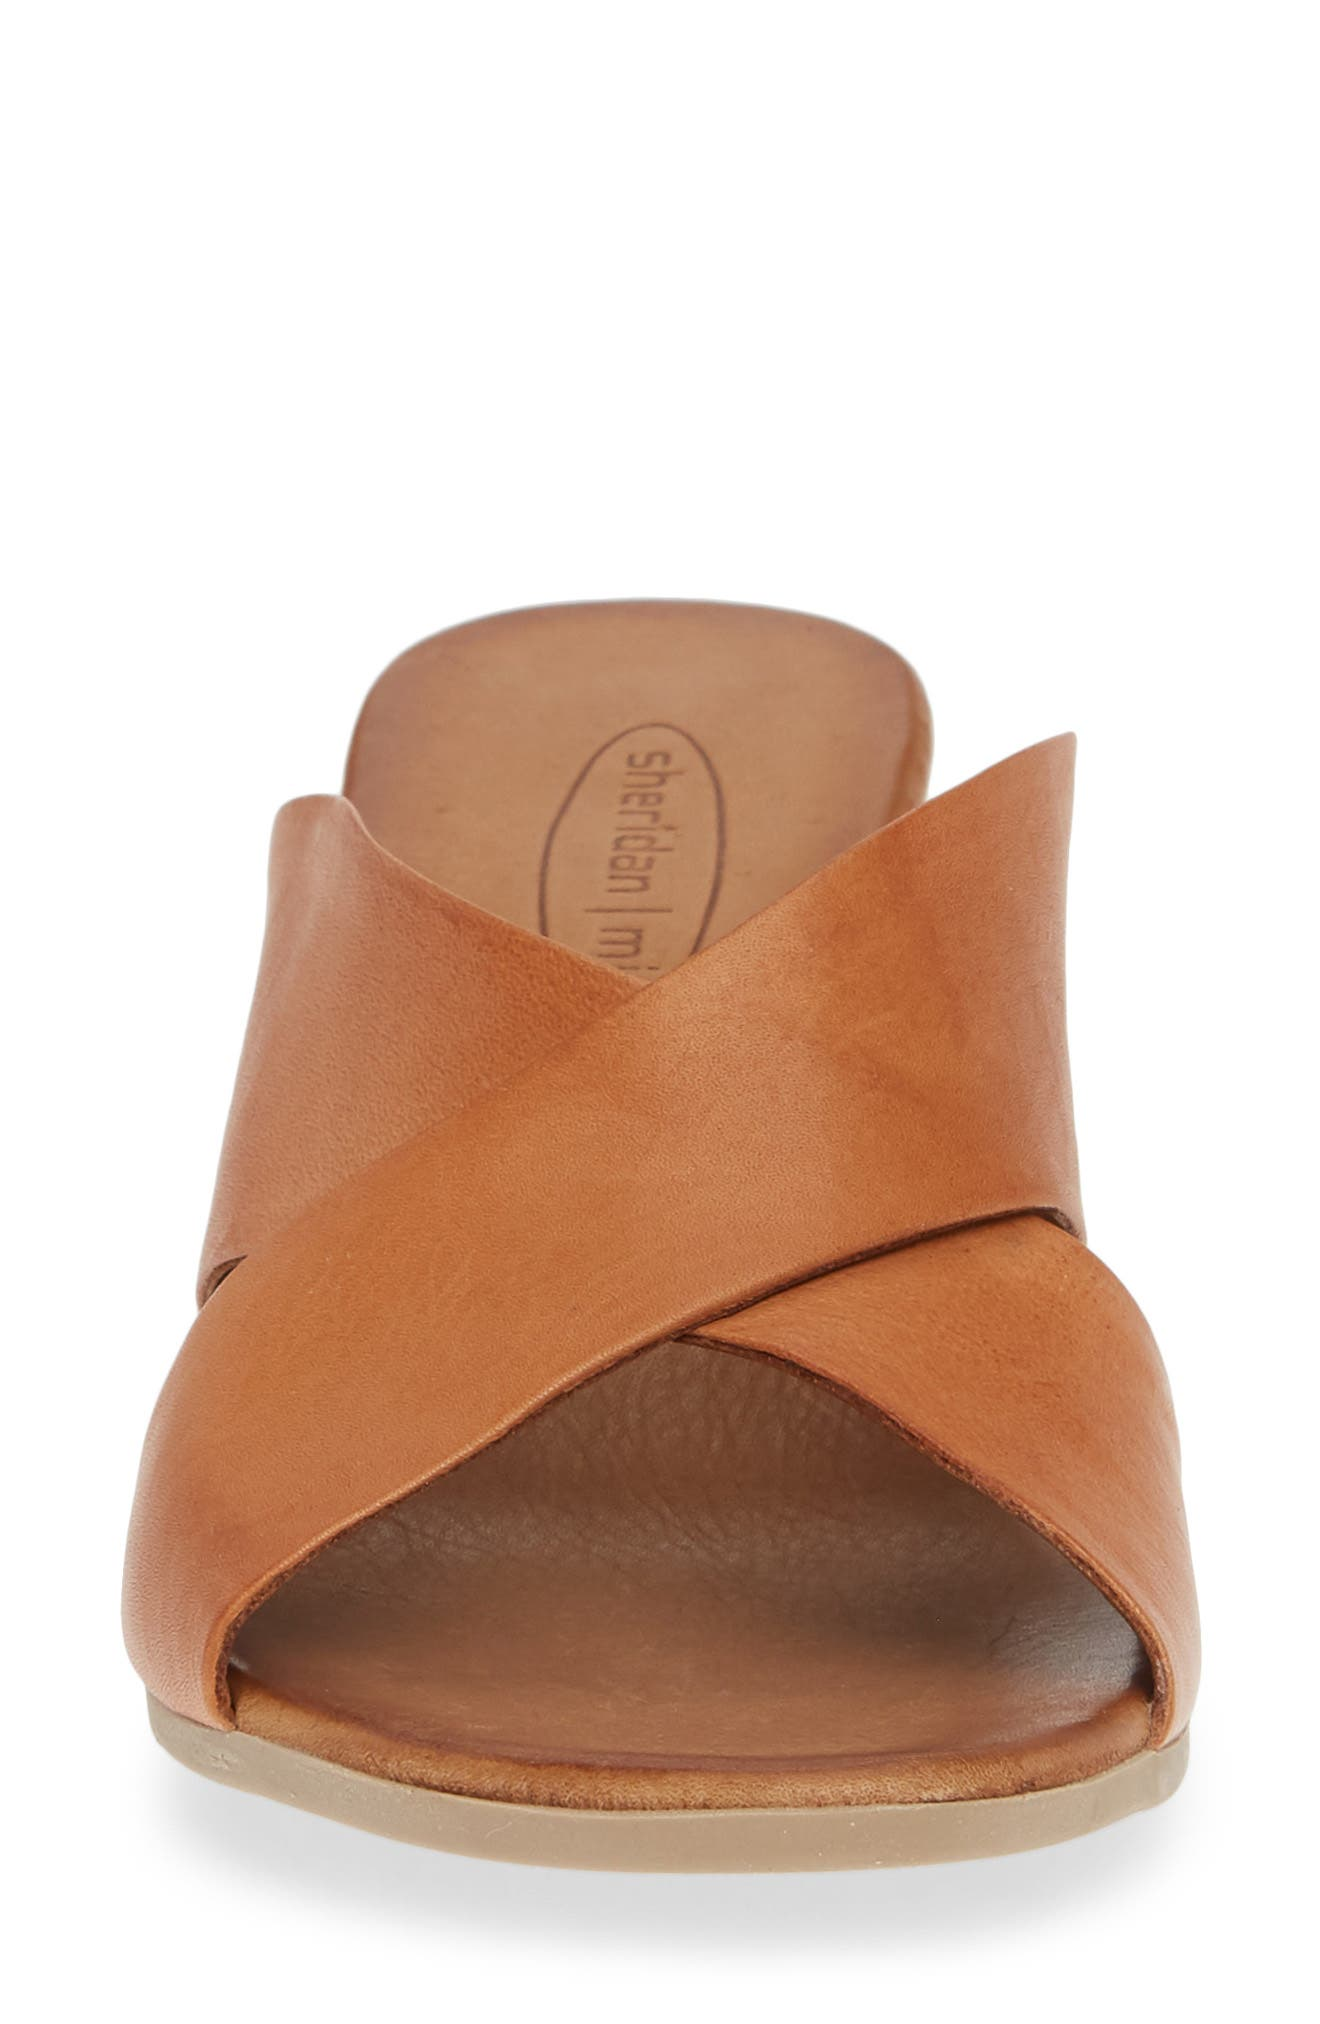 SHERIDAN MIA,                             Tonia Slide Sandal,                             Alternate thumbnail 4, color,                             COGNAC LEATHER